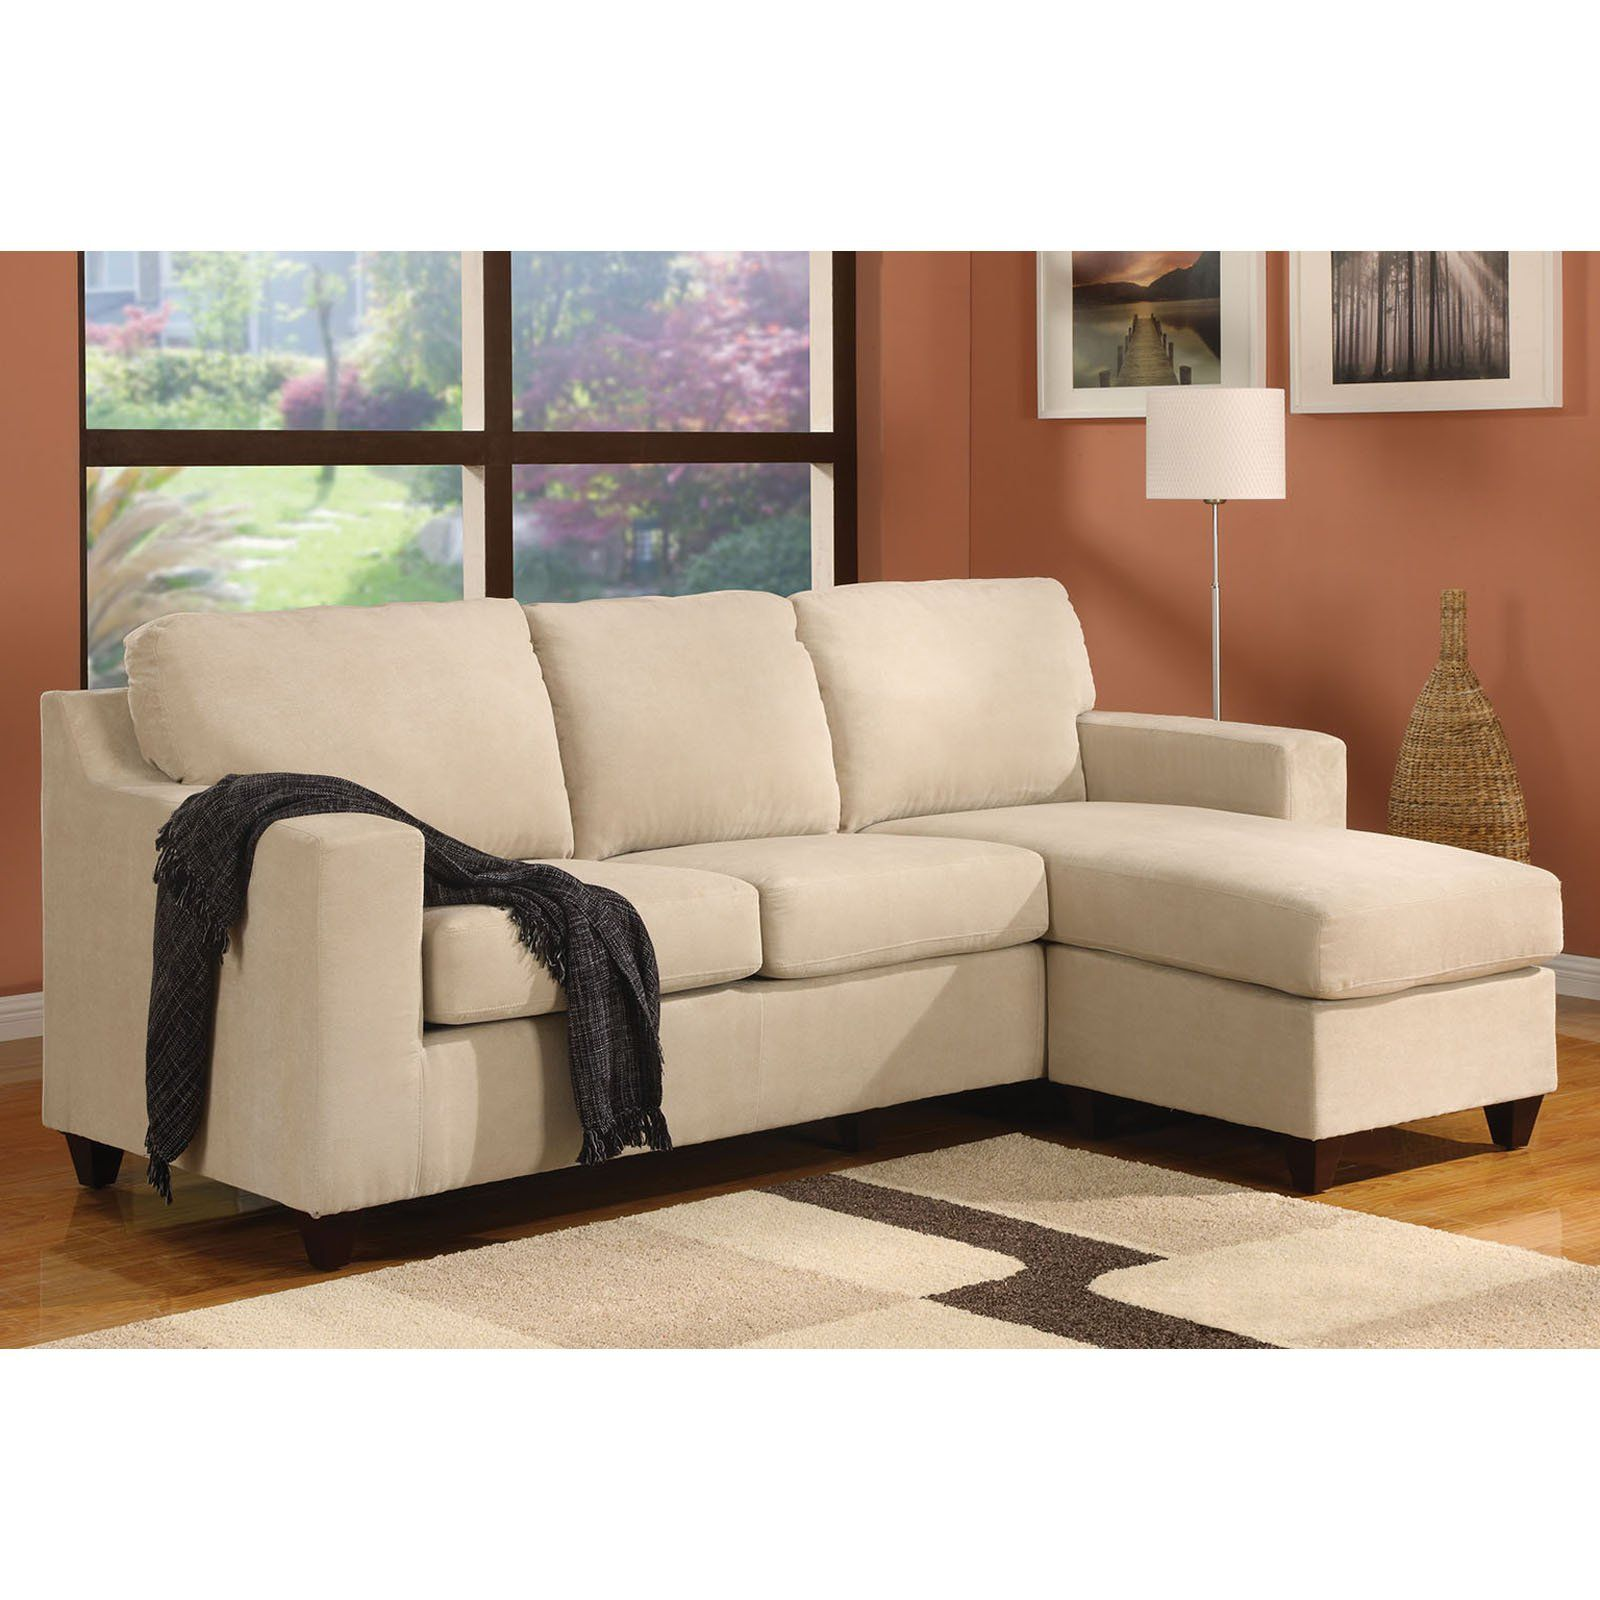 Pleasing Acme Furniture Vogue Sectional Sofa Beige Products In 2019 Cjindustries Chair Design For Home Cjindustriesco